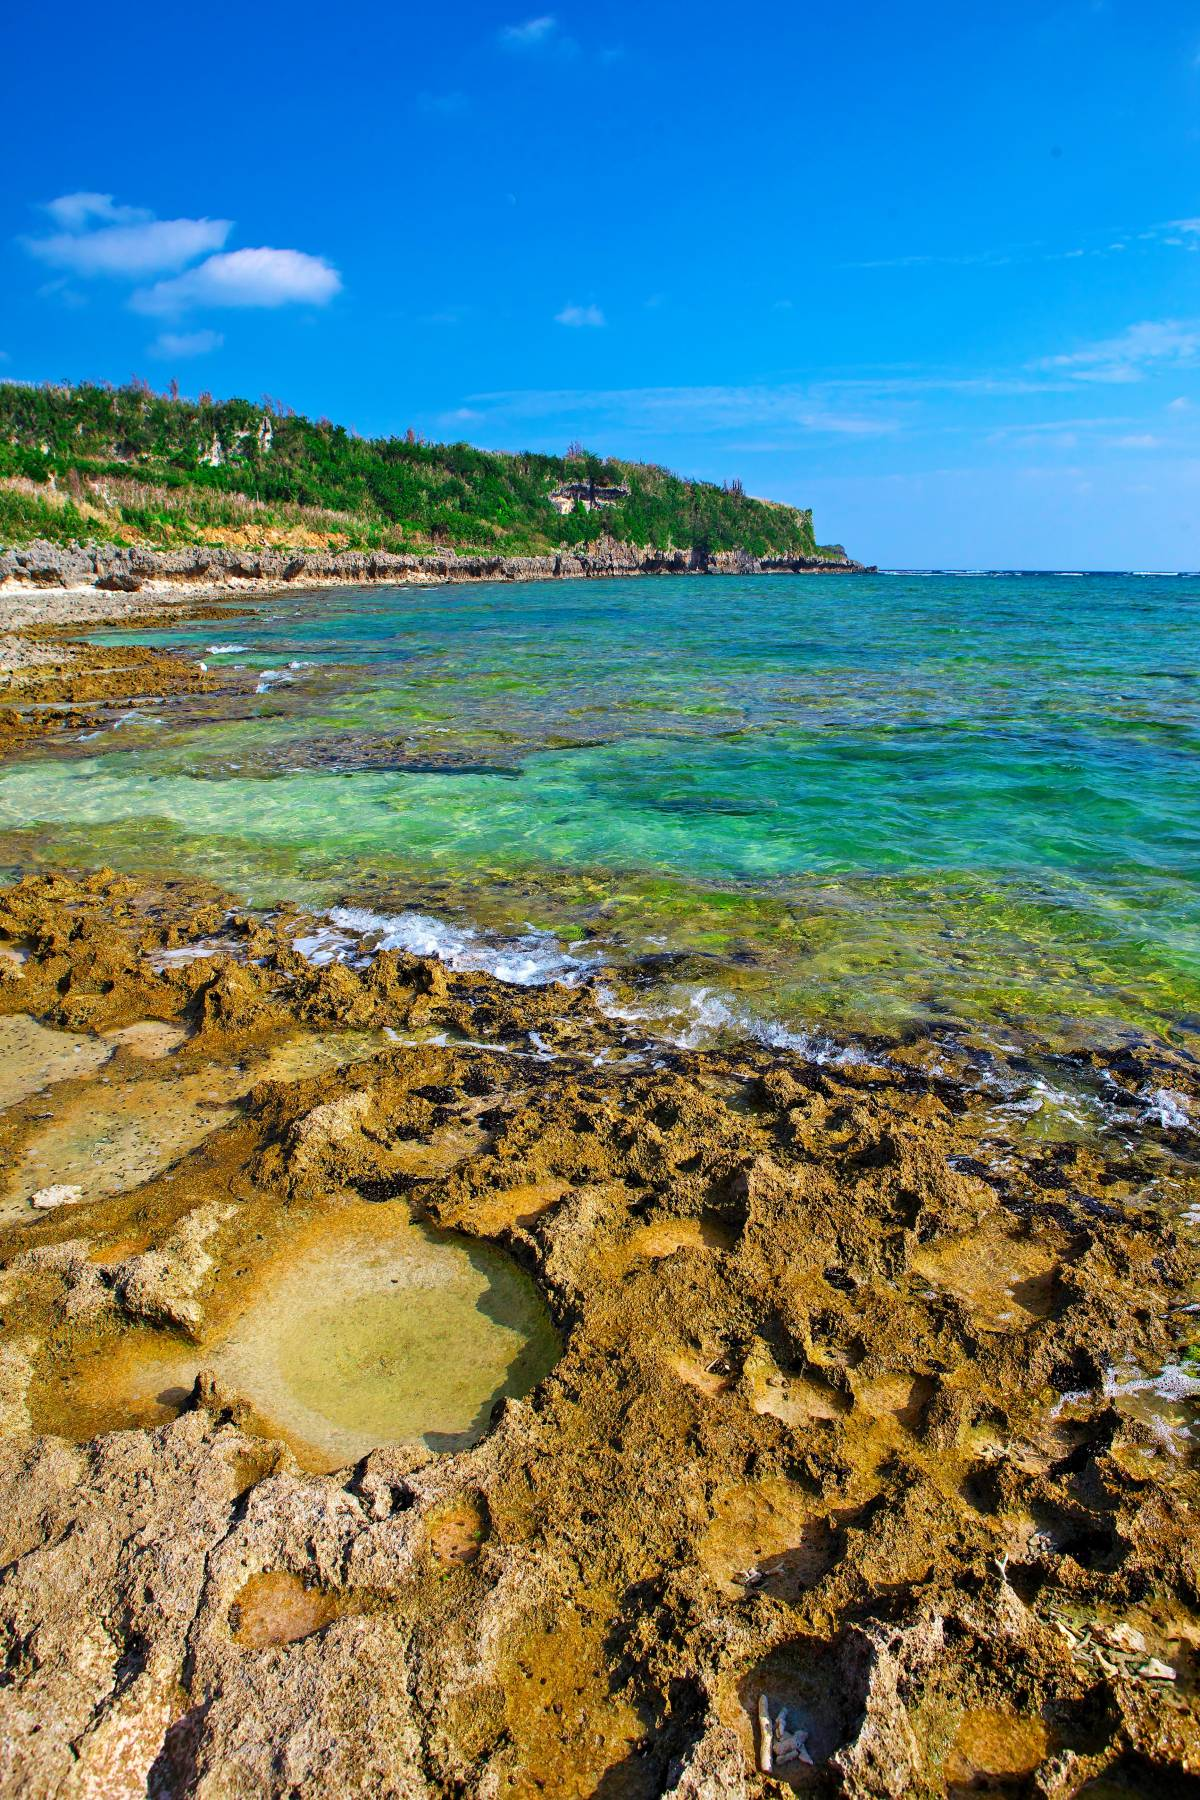 Jetstar Asia Increases Flight Frequency to Okinawa Ahead of the Year-End School Holidays